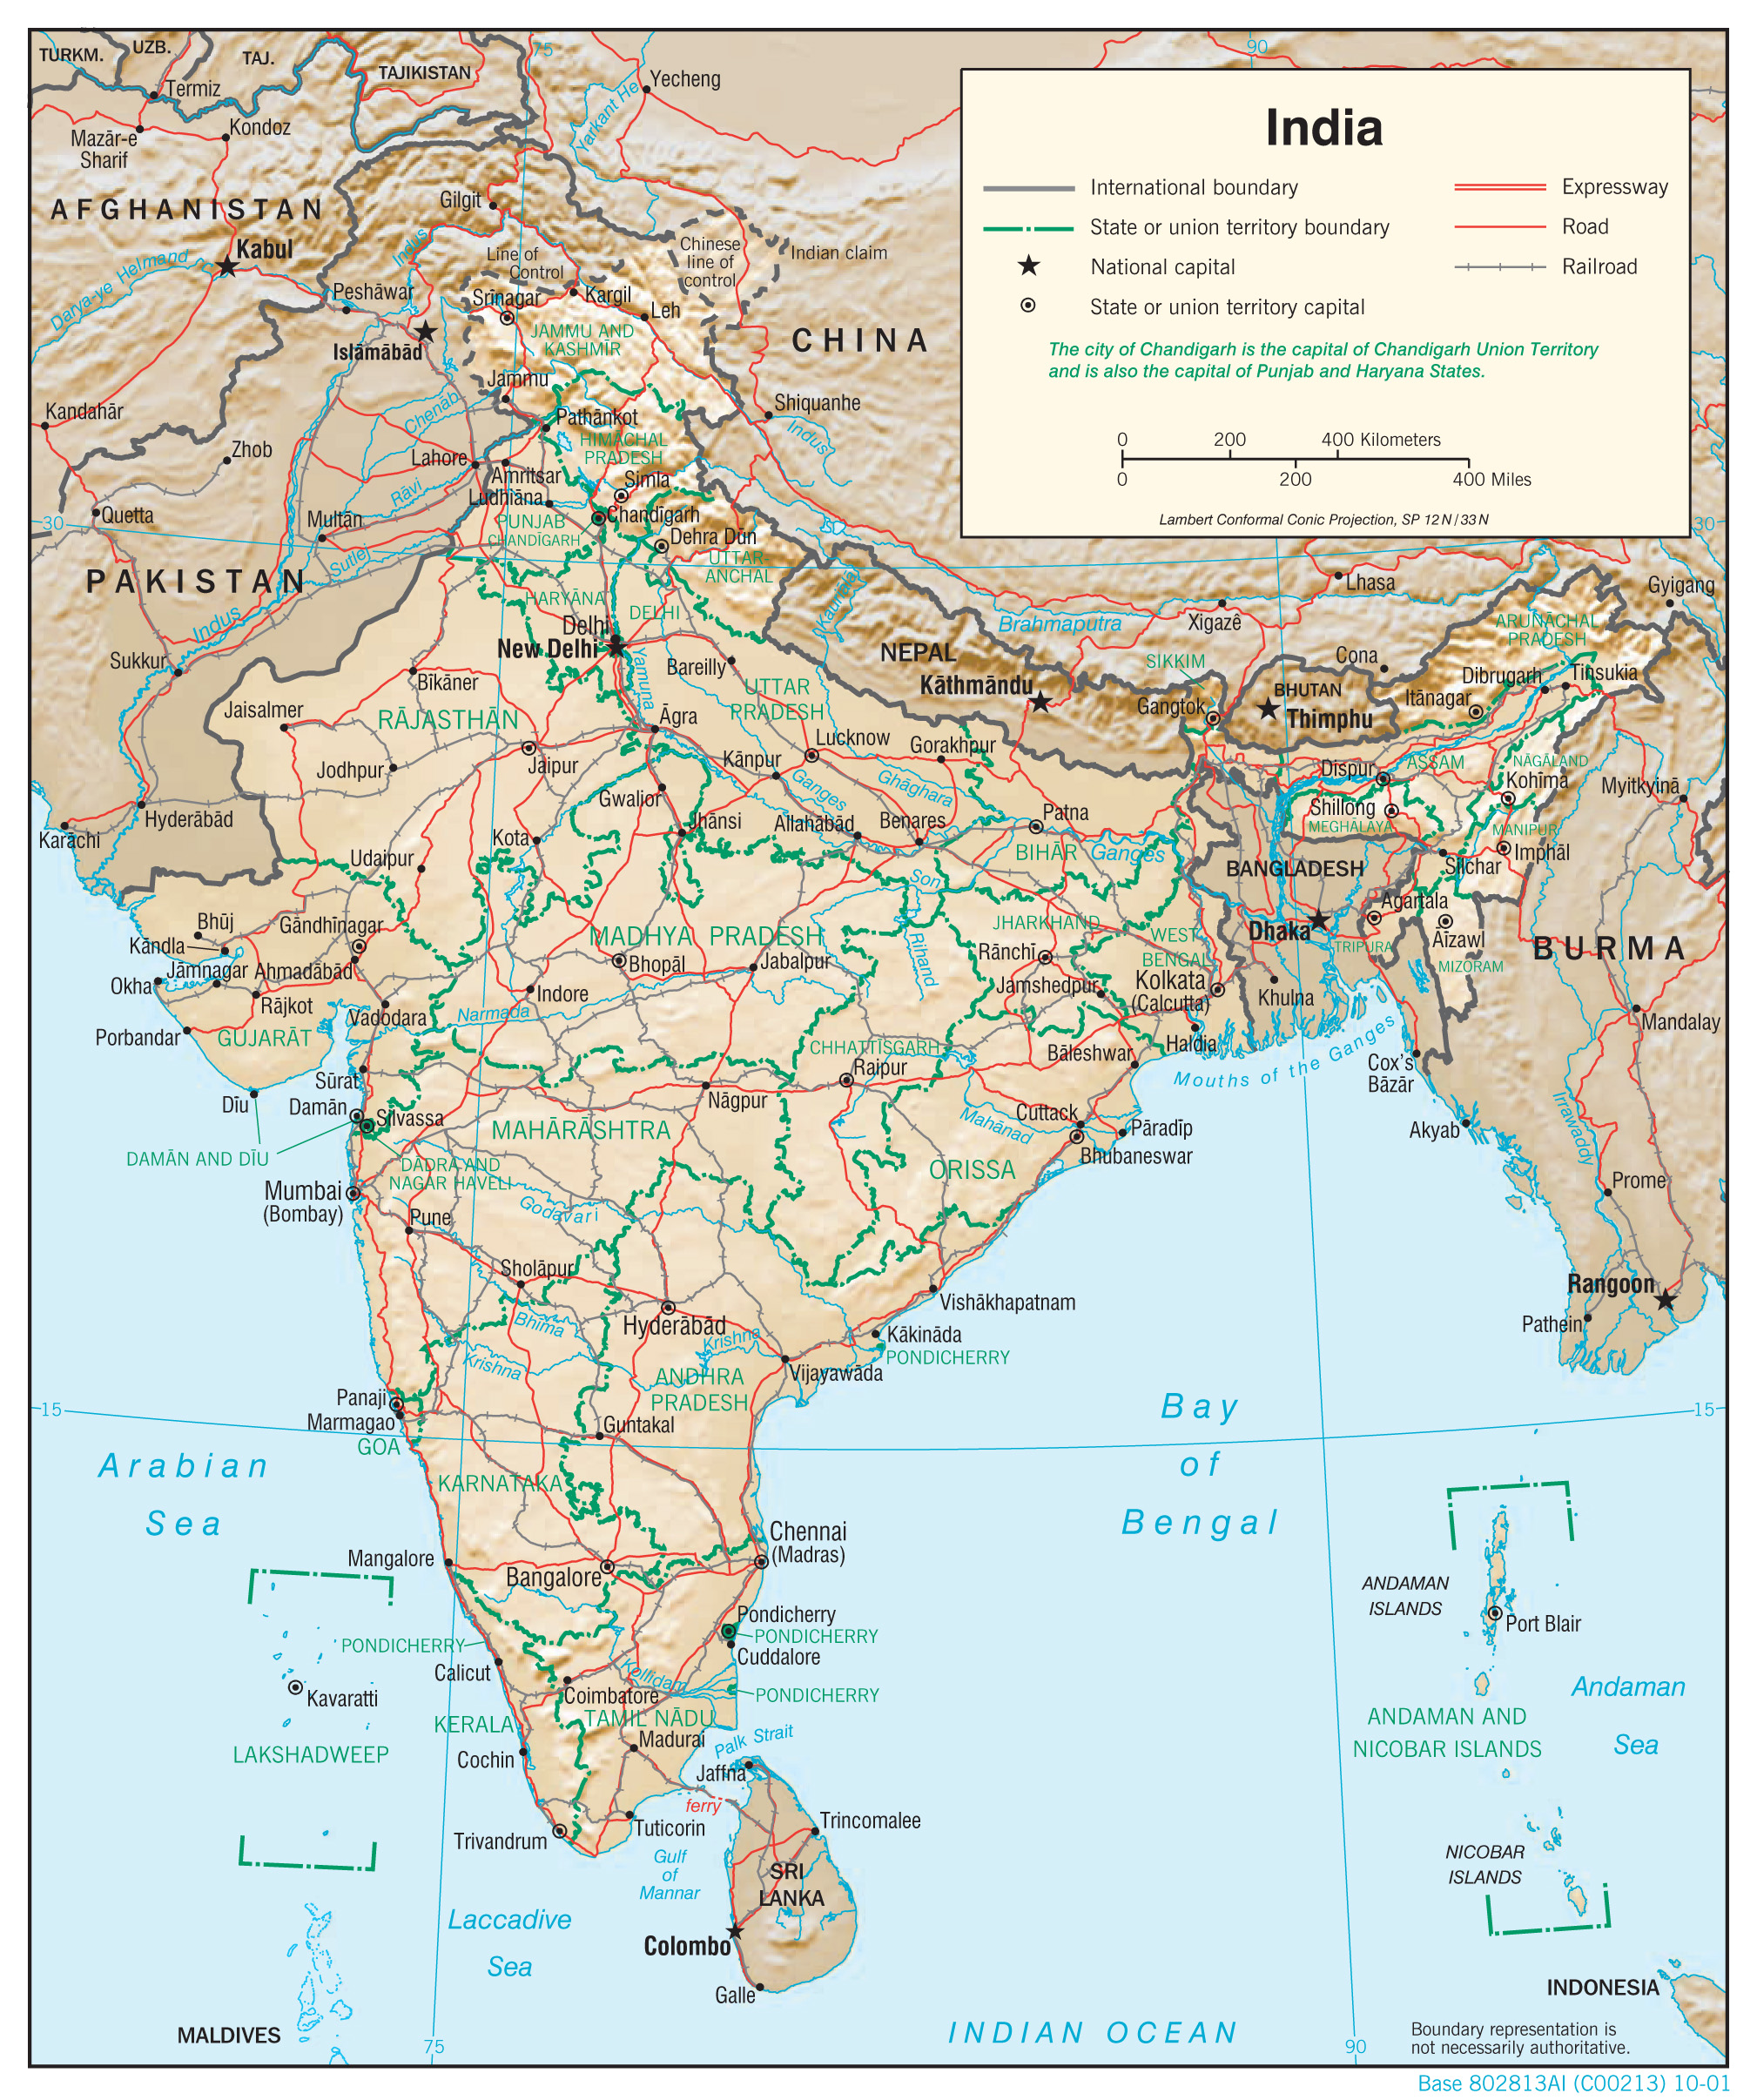 India Maps - Perry-Castañeda Map Collection - UT Library Online